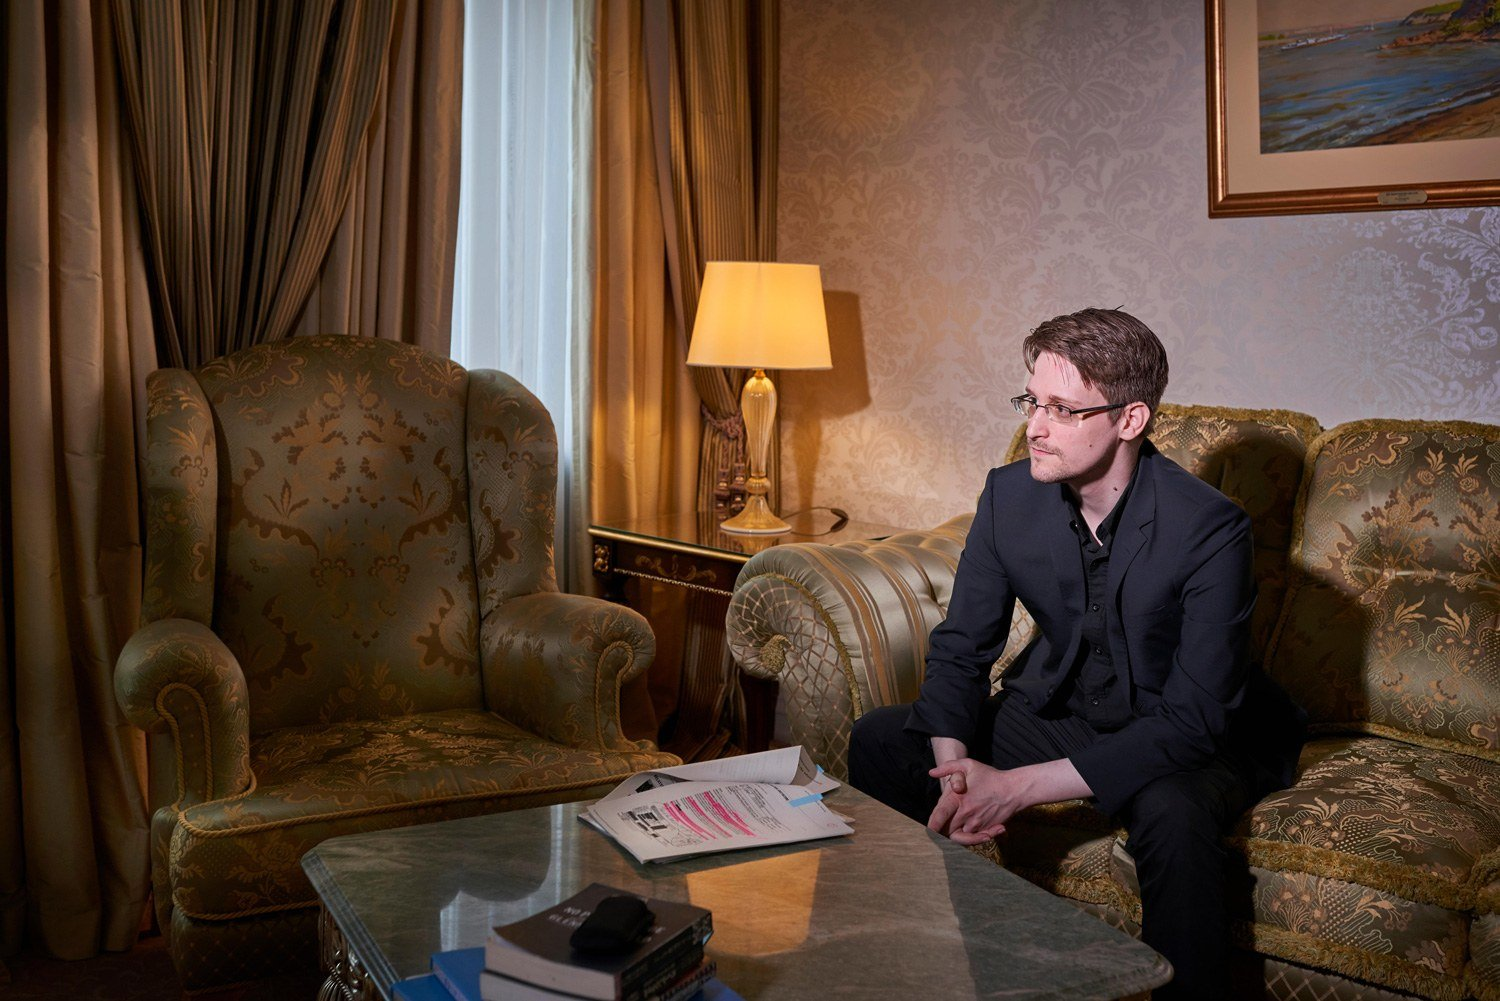 After 6 Years in Exile, Edward Snowden Explains Himself